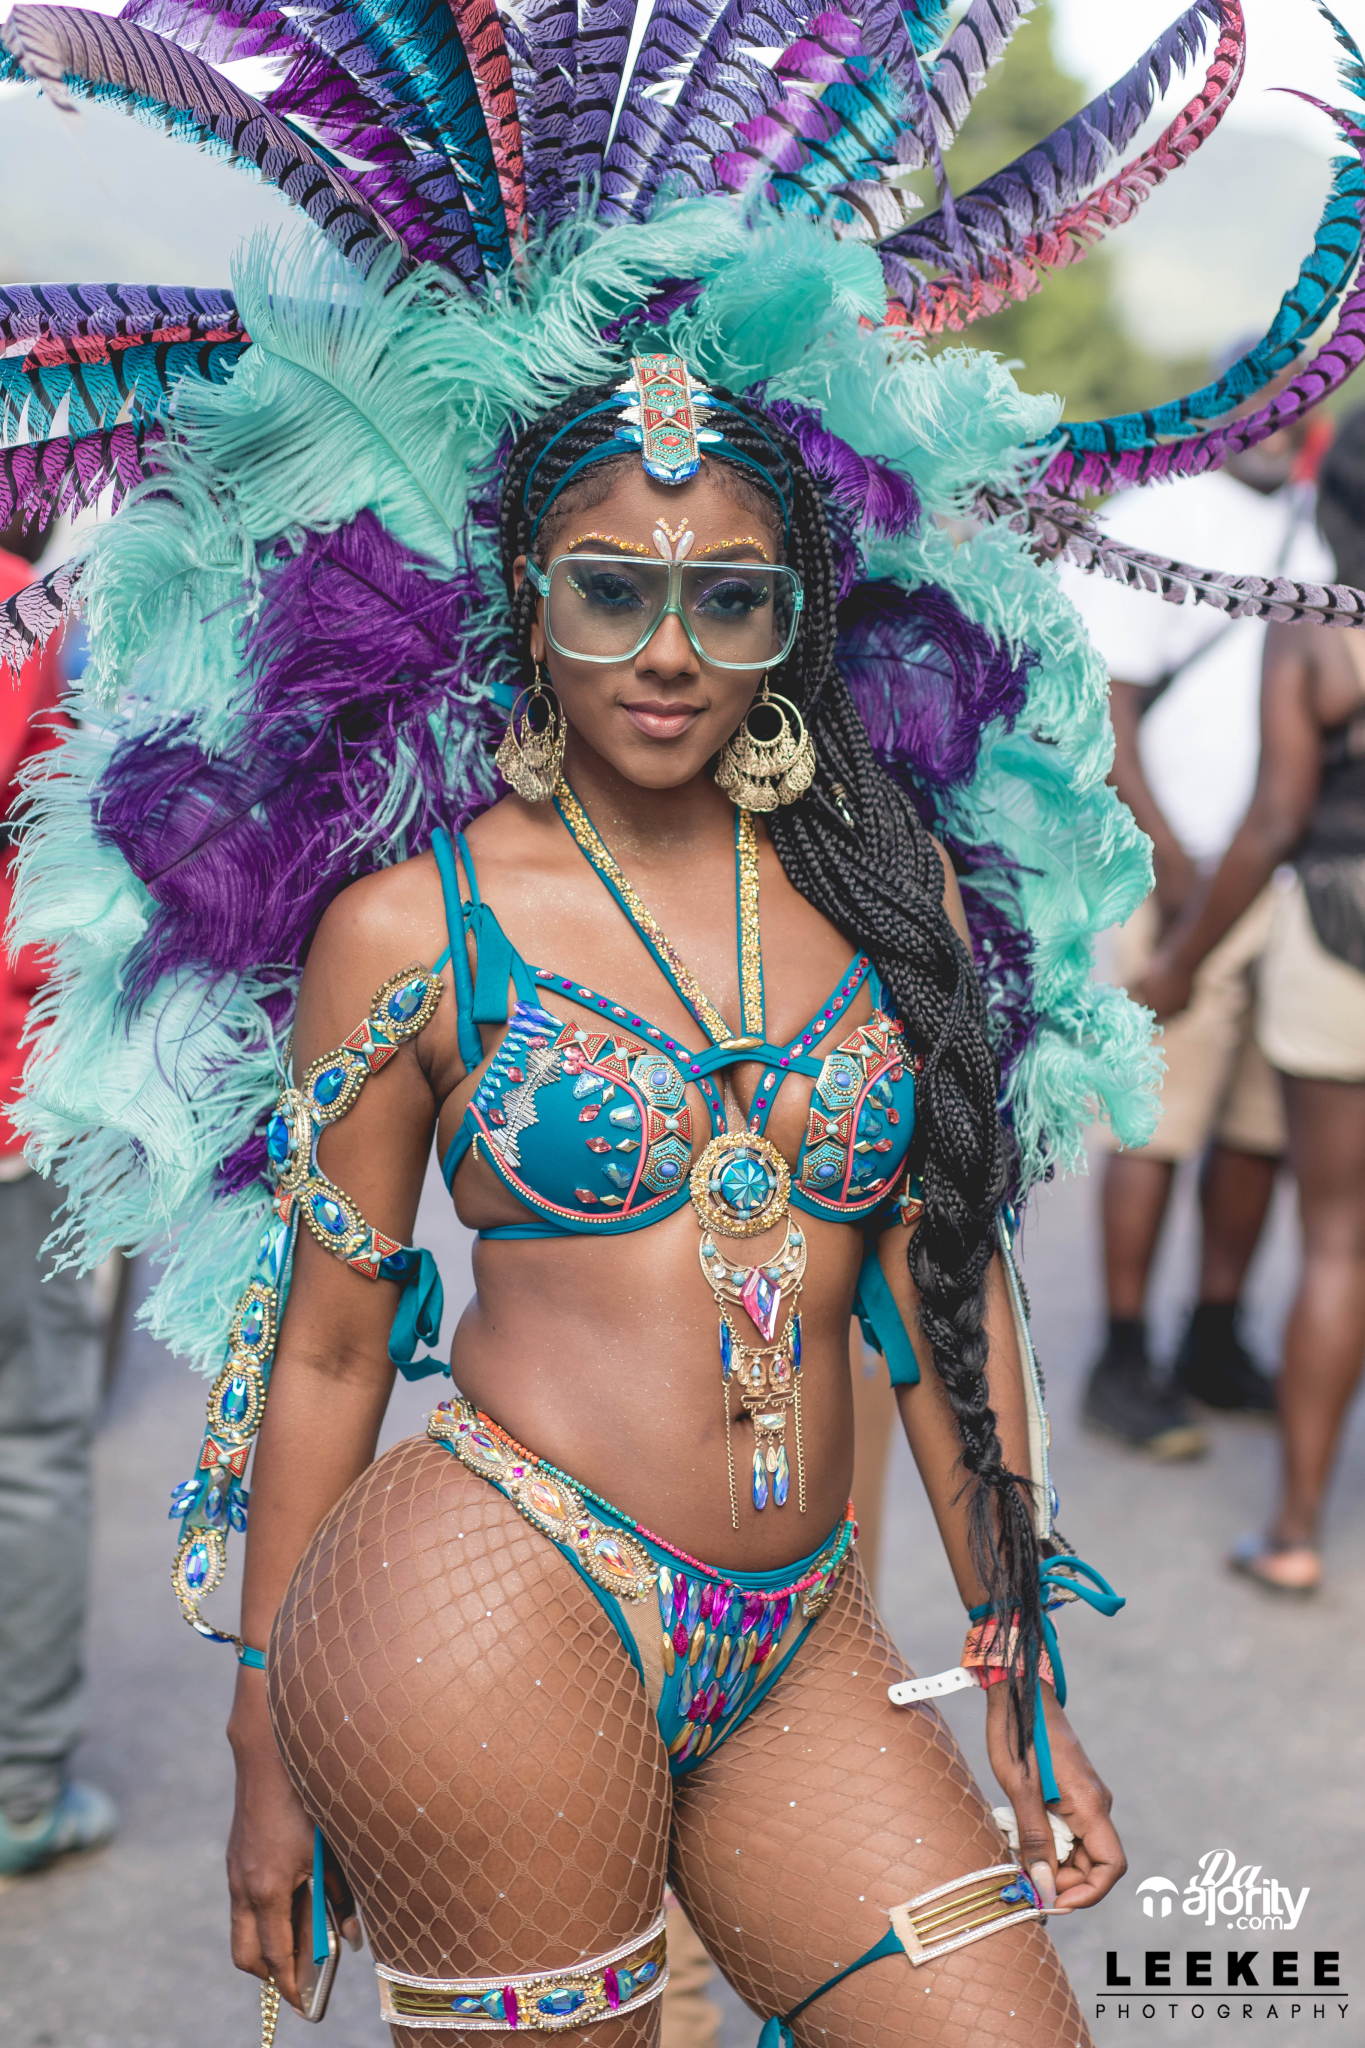 nude pics from carnival